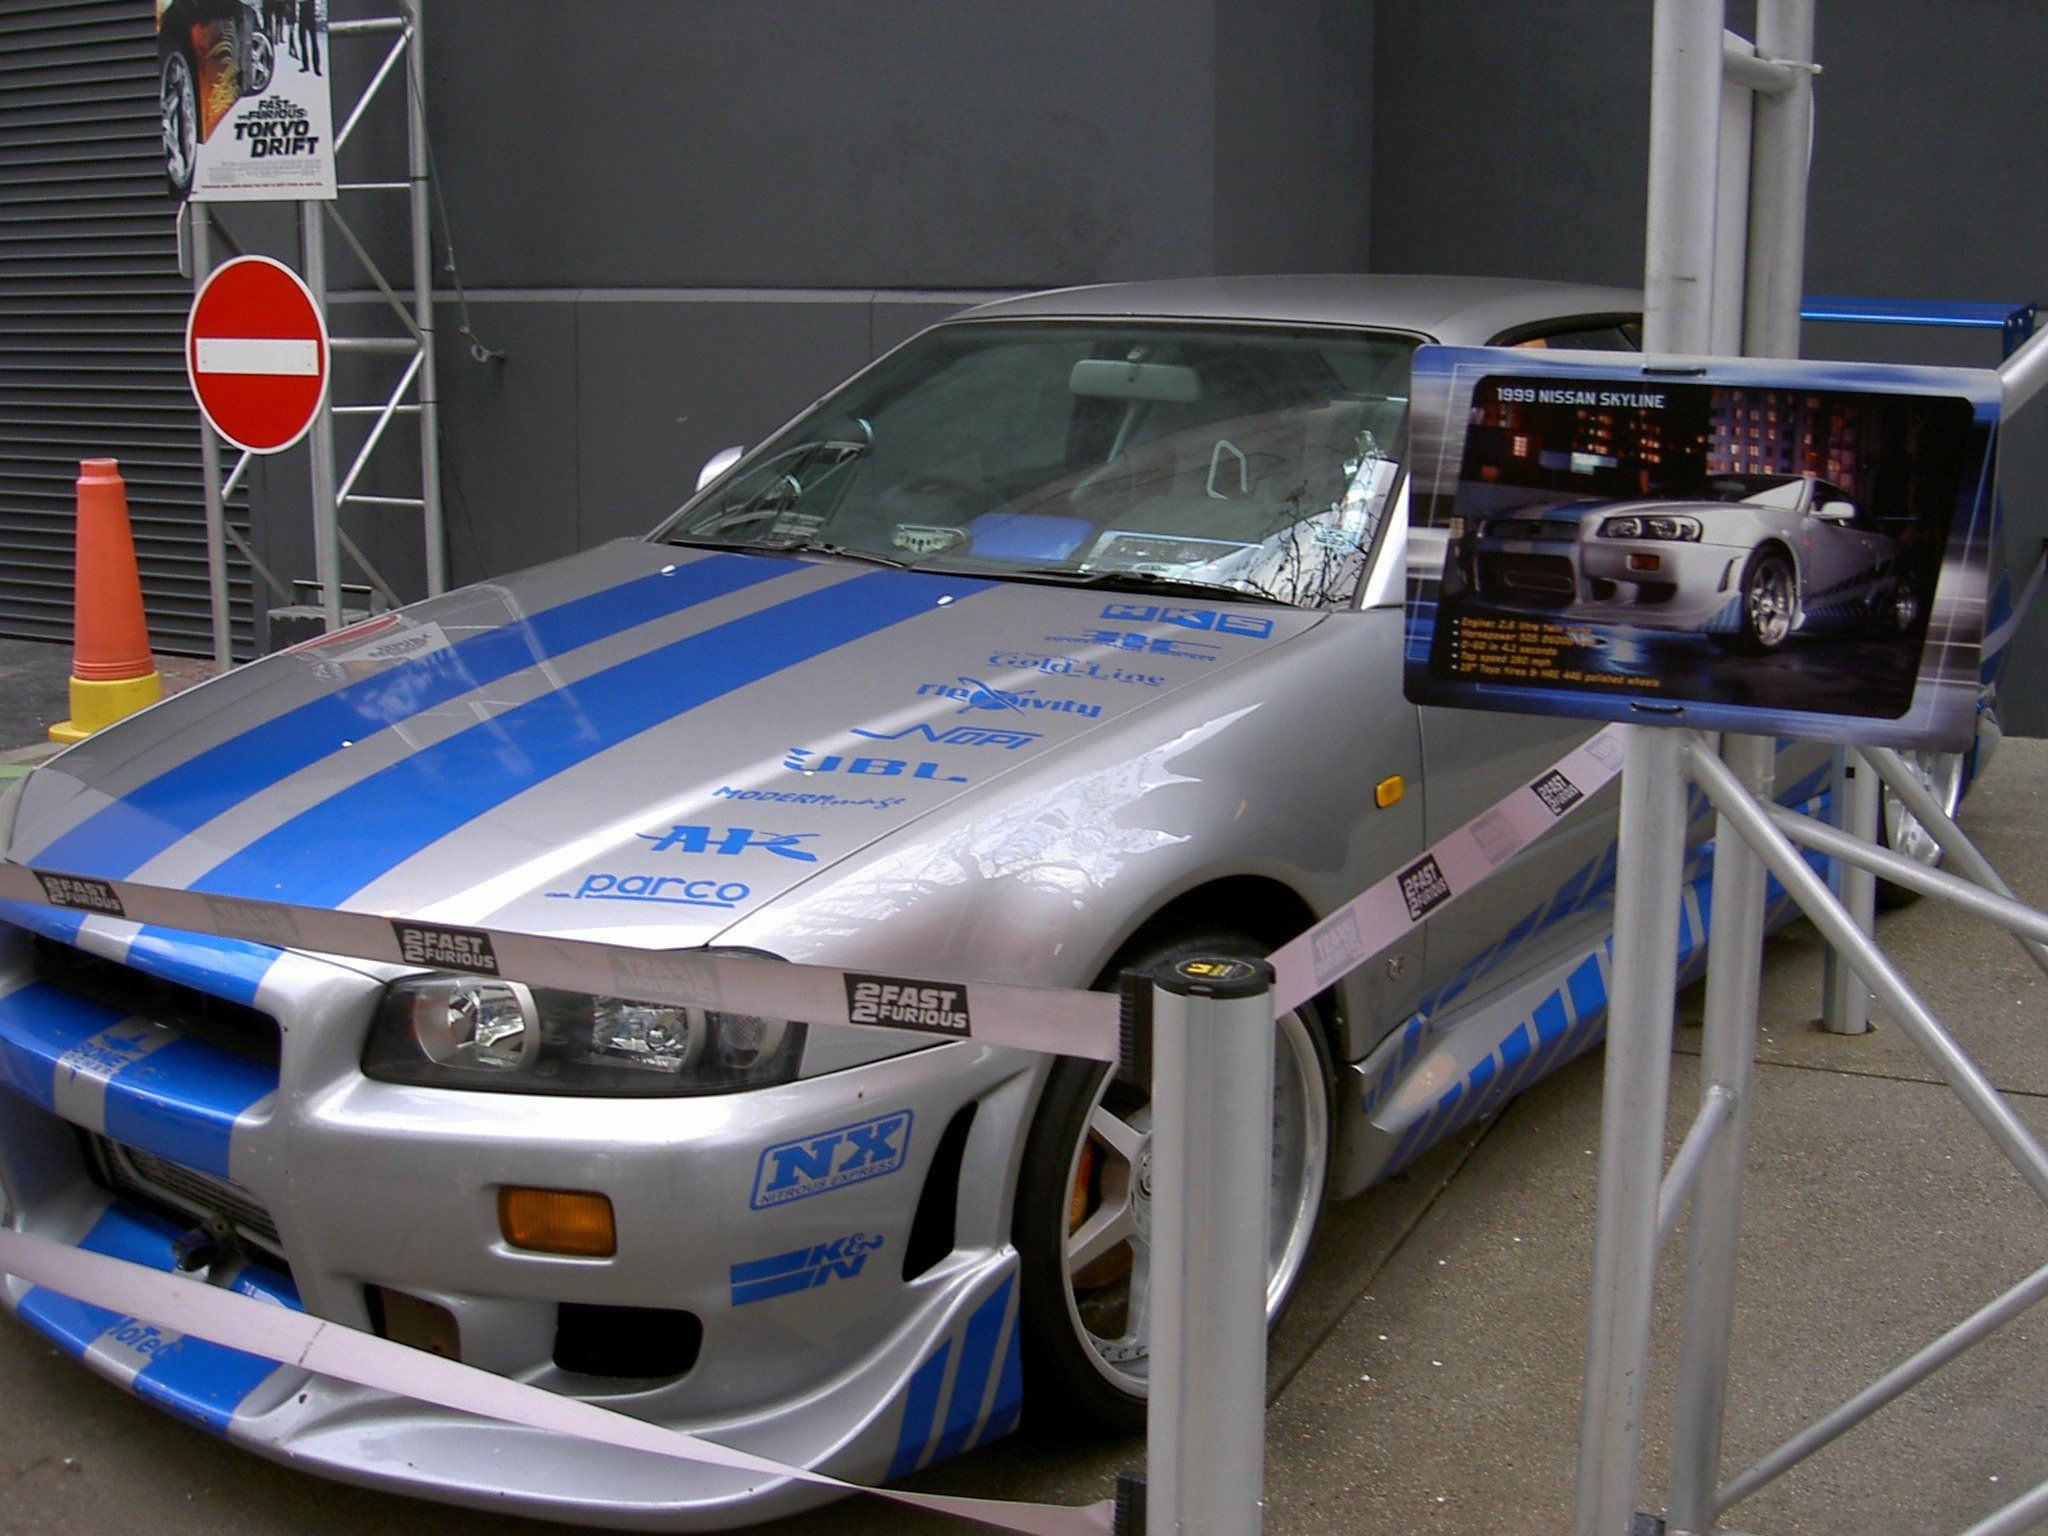 Fast And Furious Coloring Sheets Beautiful File Nissan Skyline 2 Fast 2 Furious Jpg Wikimedia Mons Nissan Skyline Skyline Gtr R34 Nissan Skyline Gtr